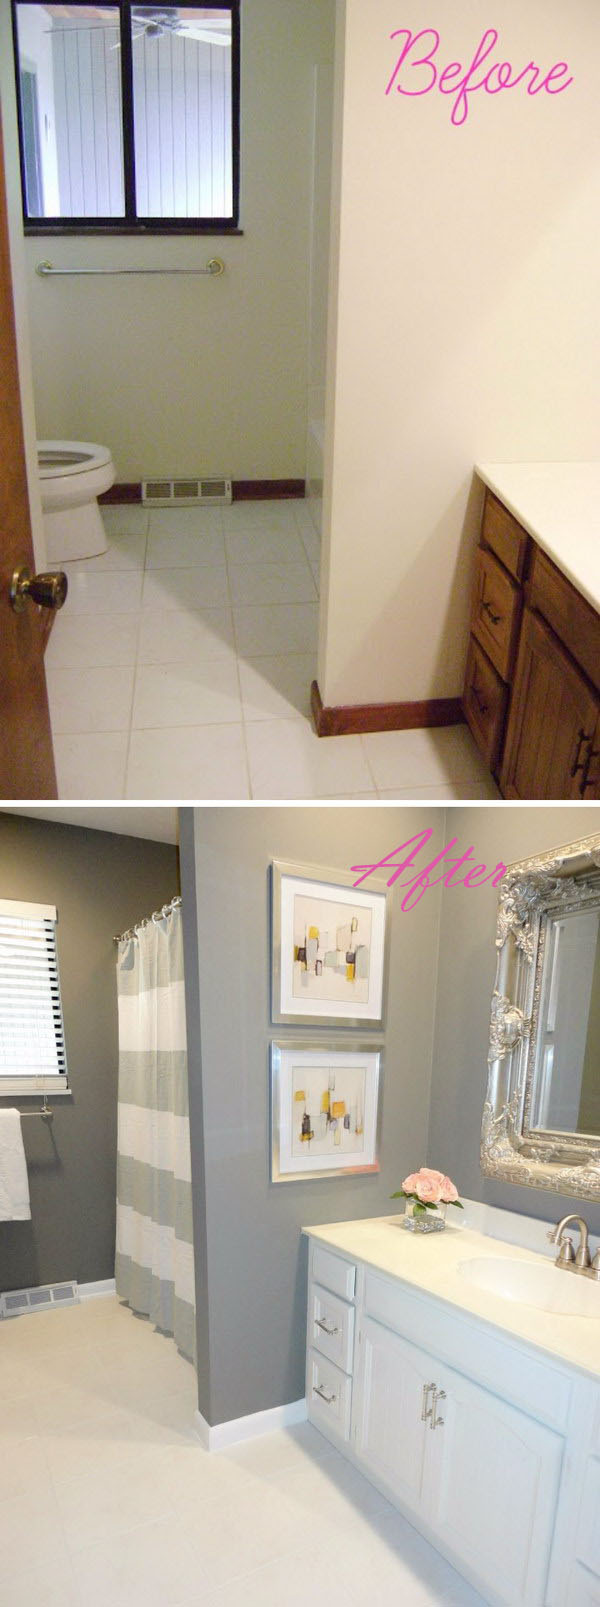 DIY Small Bathroom Remodel on a Budget